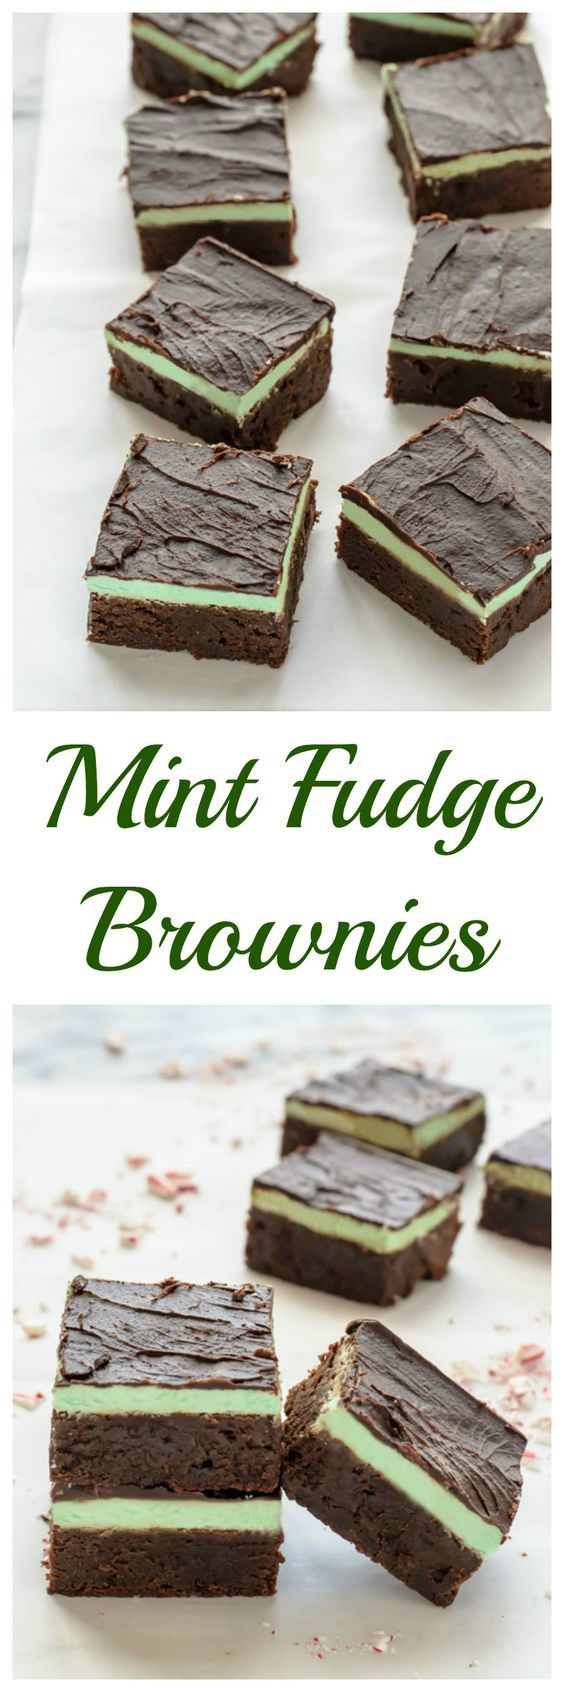 BEST EVER Mint Brownies. Perfect St. Patrick's Day dessert! So rich and fudgy, and the green color is festive! Recipe at wellplated.com | @wellplated